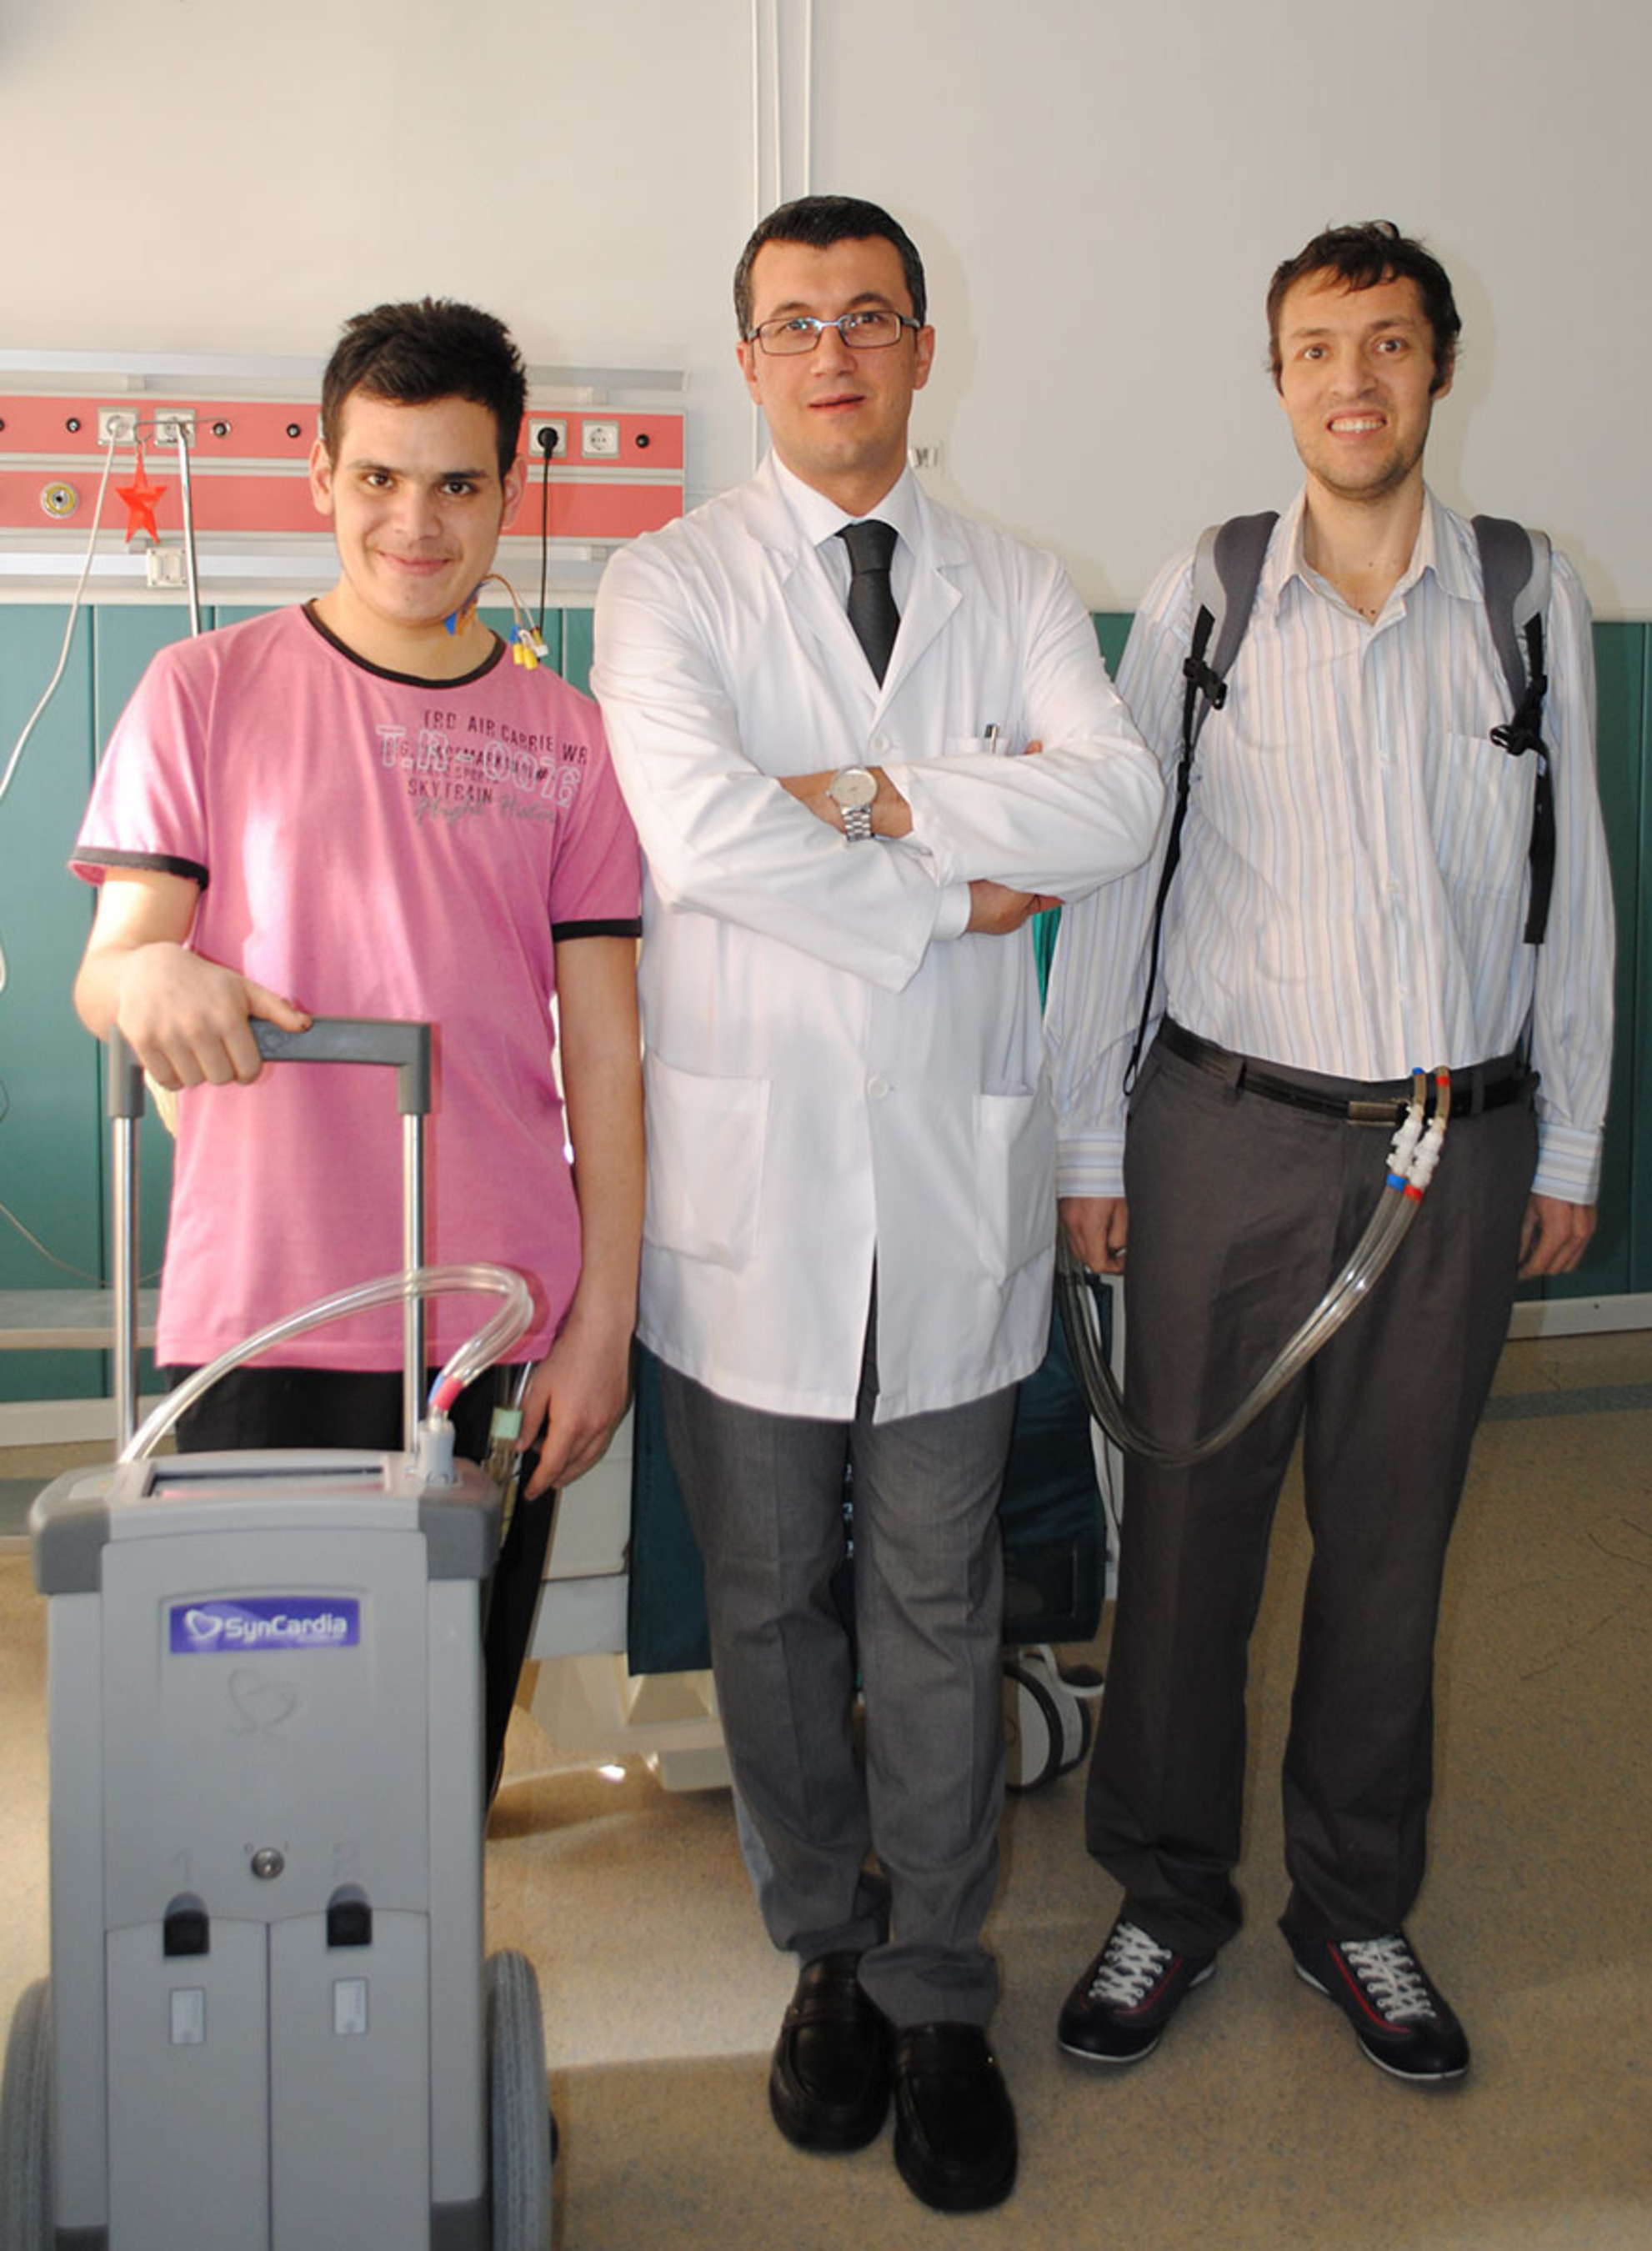 Dr. Umit Kervan, associate professor at Turkiye Yusek Ihstisas Hospital, center, spends time with Turkey's 25th SynCardia Total Artificial Heart implant patient, Sefa Yilmaz, left, who was implanted on Jan. 13, 2014, and Yilmaz Cekic, right, the country's 24th implant patient. Cekic, wearing the Freedom portable driver that powers the SynCardia Heart, was discharged from the hospital on Jan. 31, 2014, less than six weeks after surgeons removed his dying heart and replaced it with the SynCardia Heart.  (PRNewsFoto/SynCardia Systems, Inc.)